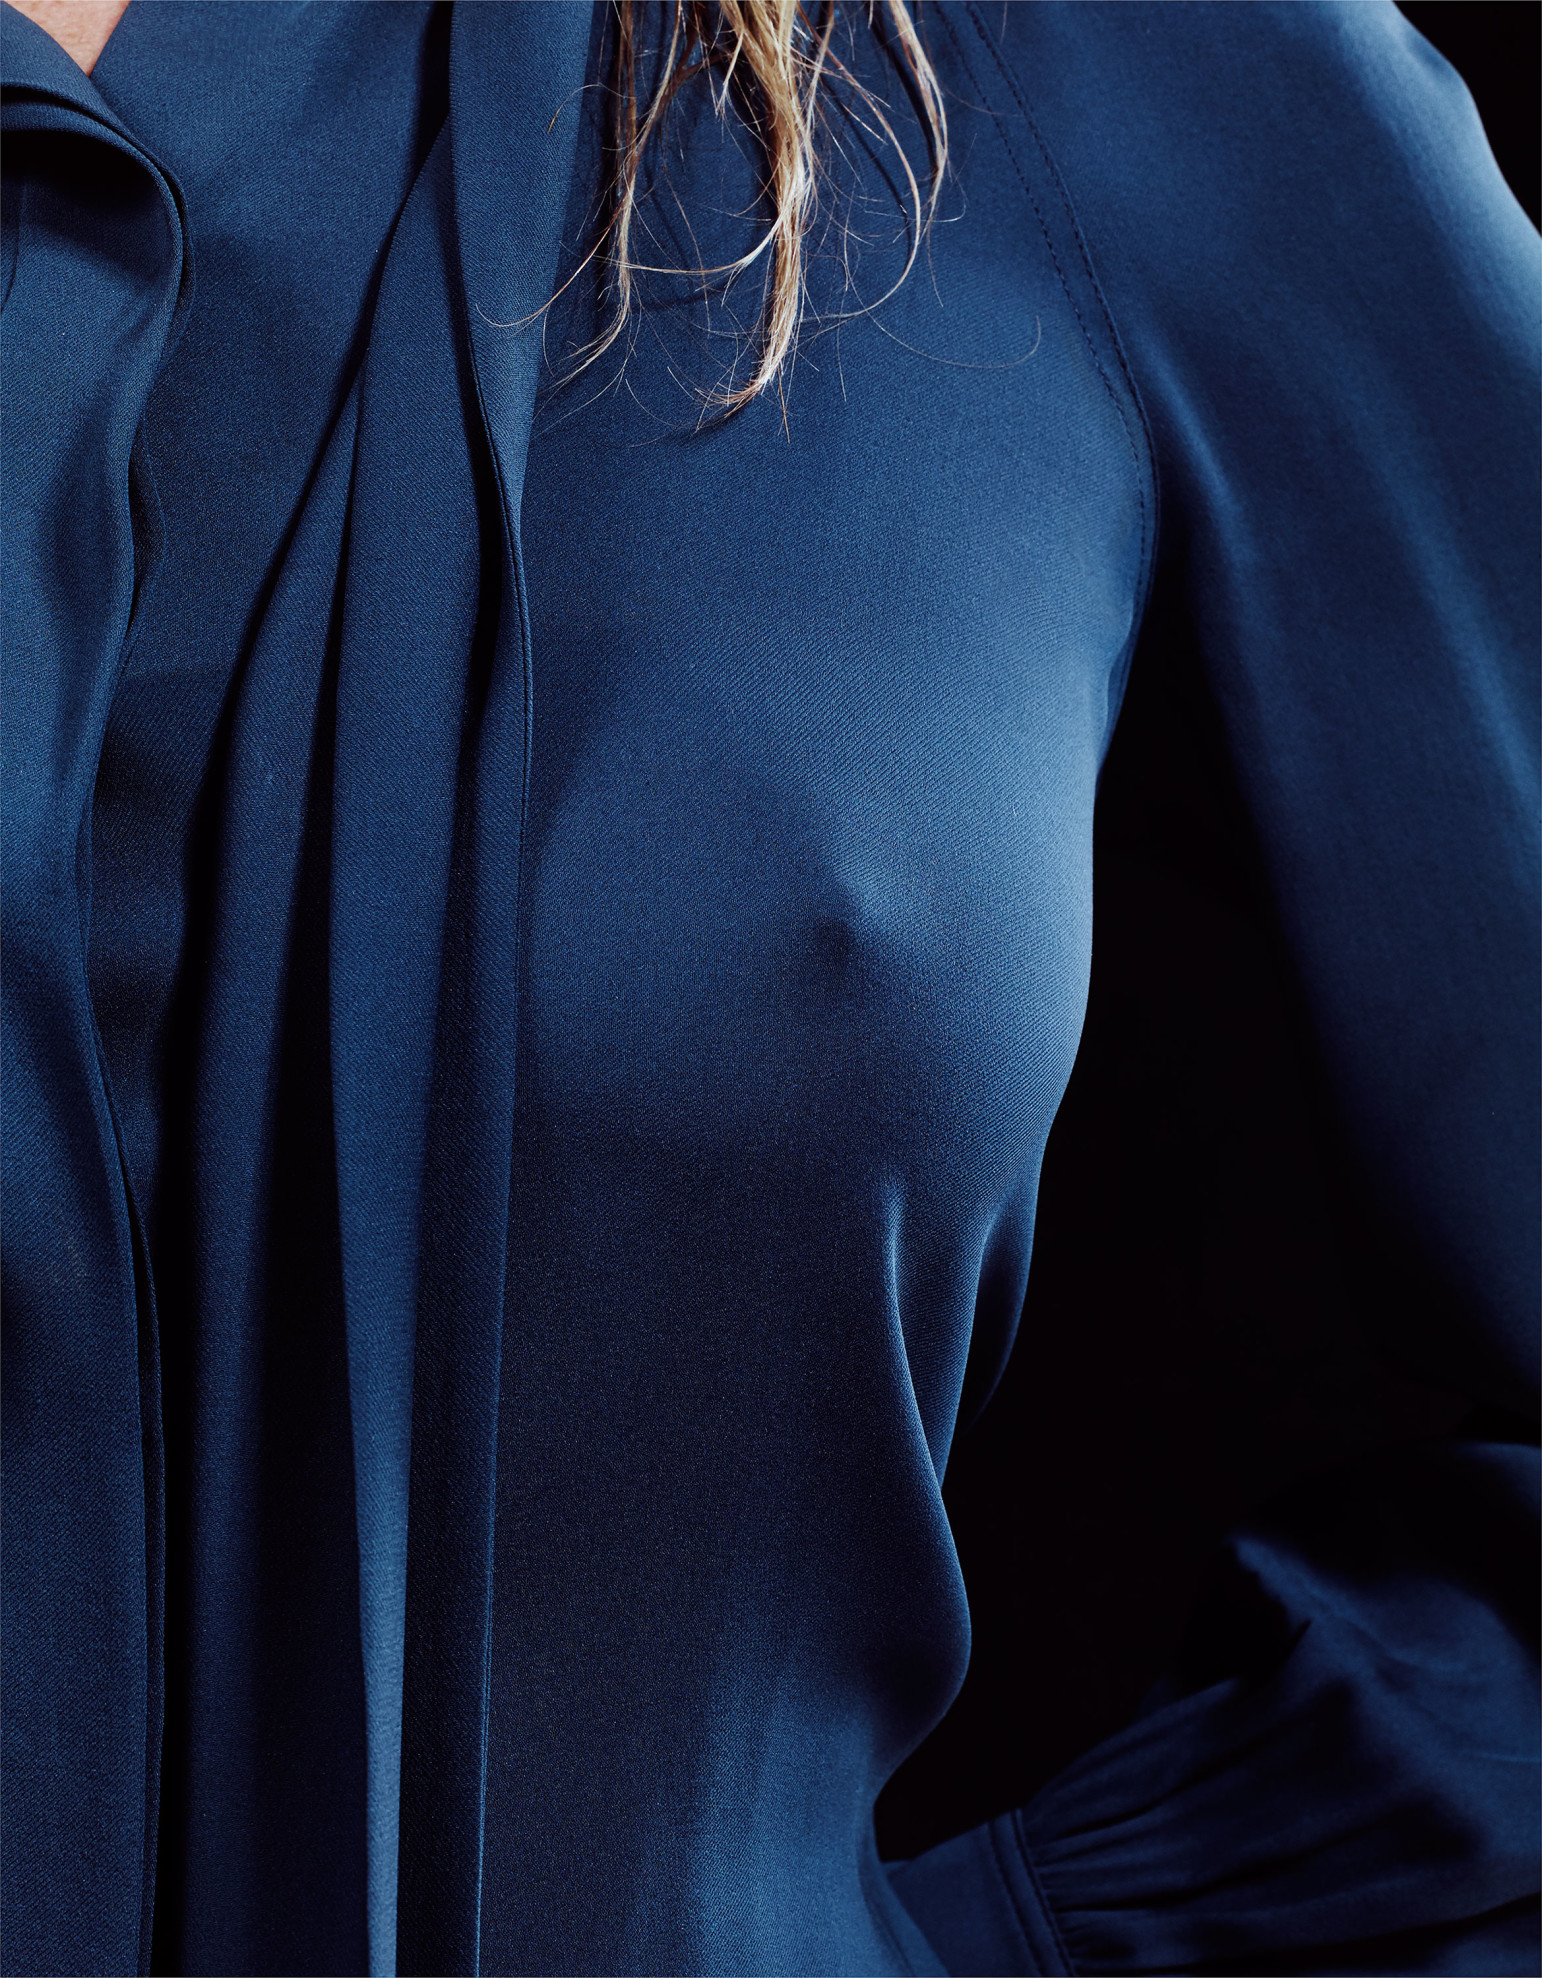 kate-moss-a-piece-of-kate-craig-mc-dean-may-2015-w-magazine-06